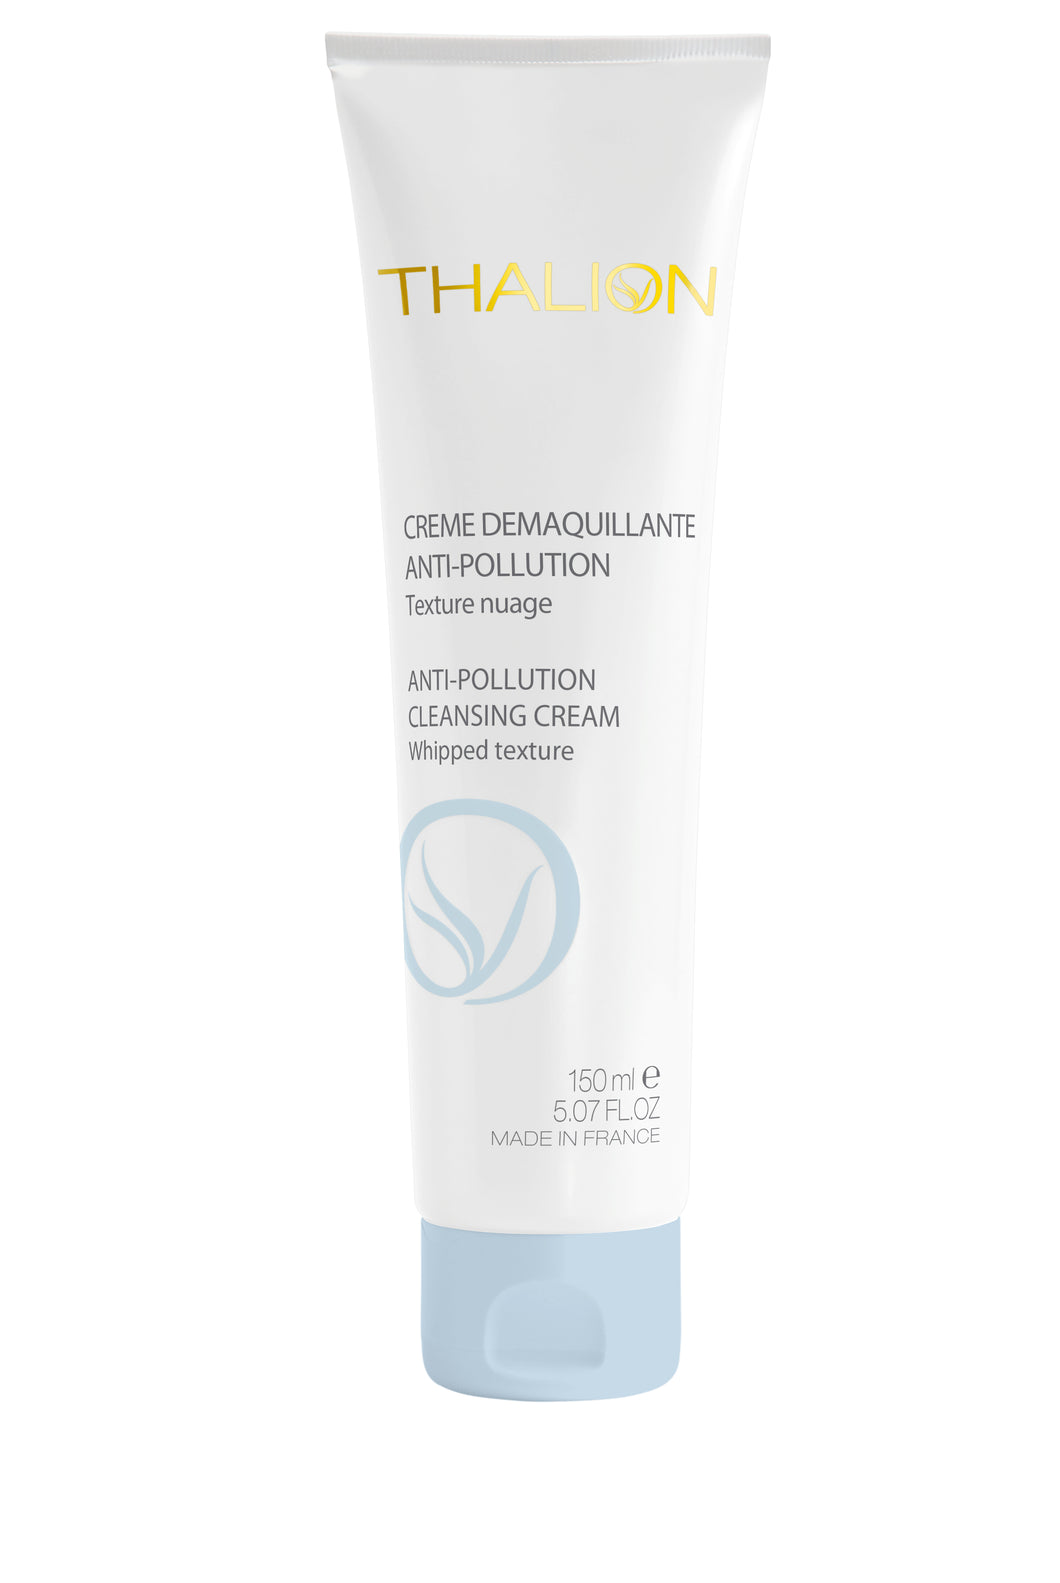 Anti-pollution Cleansing Cream